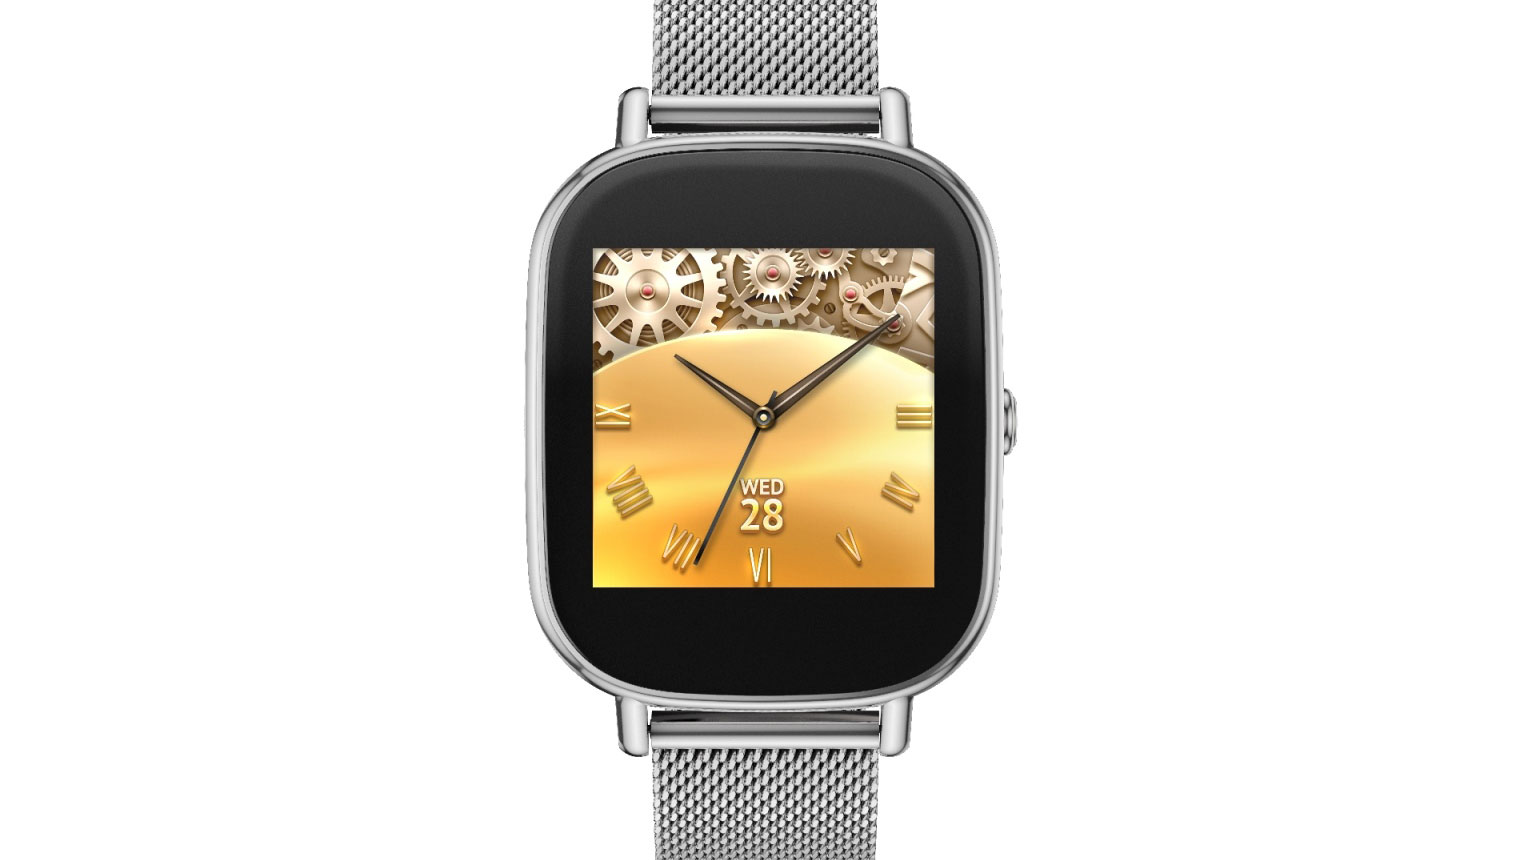 f1c35feda Asus ZenWatch 2 release date, news and features | TechRadar